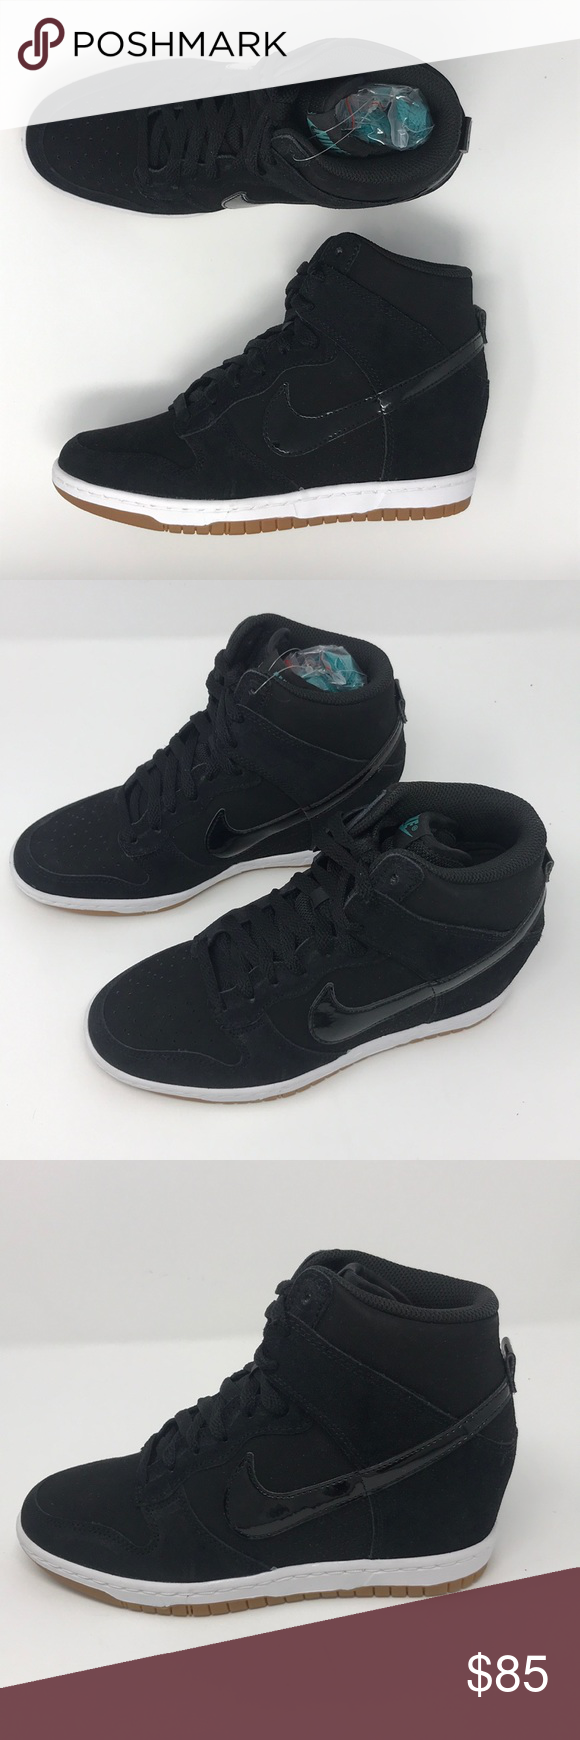 huge discount f0fb9 c11a5 Nike dunk ski hi essentials black gum bottom wedge Nike wedge sneaker -  suede Please note there will be slight scuff marks due to them being suede  Nike ...